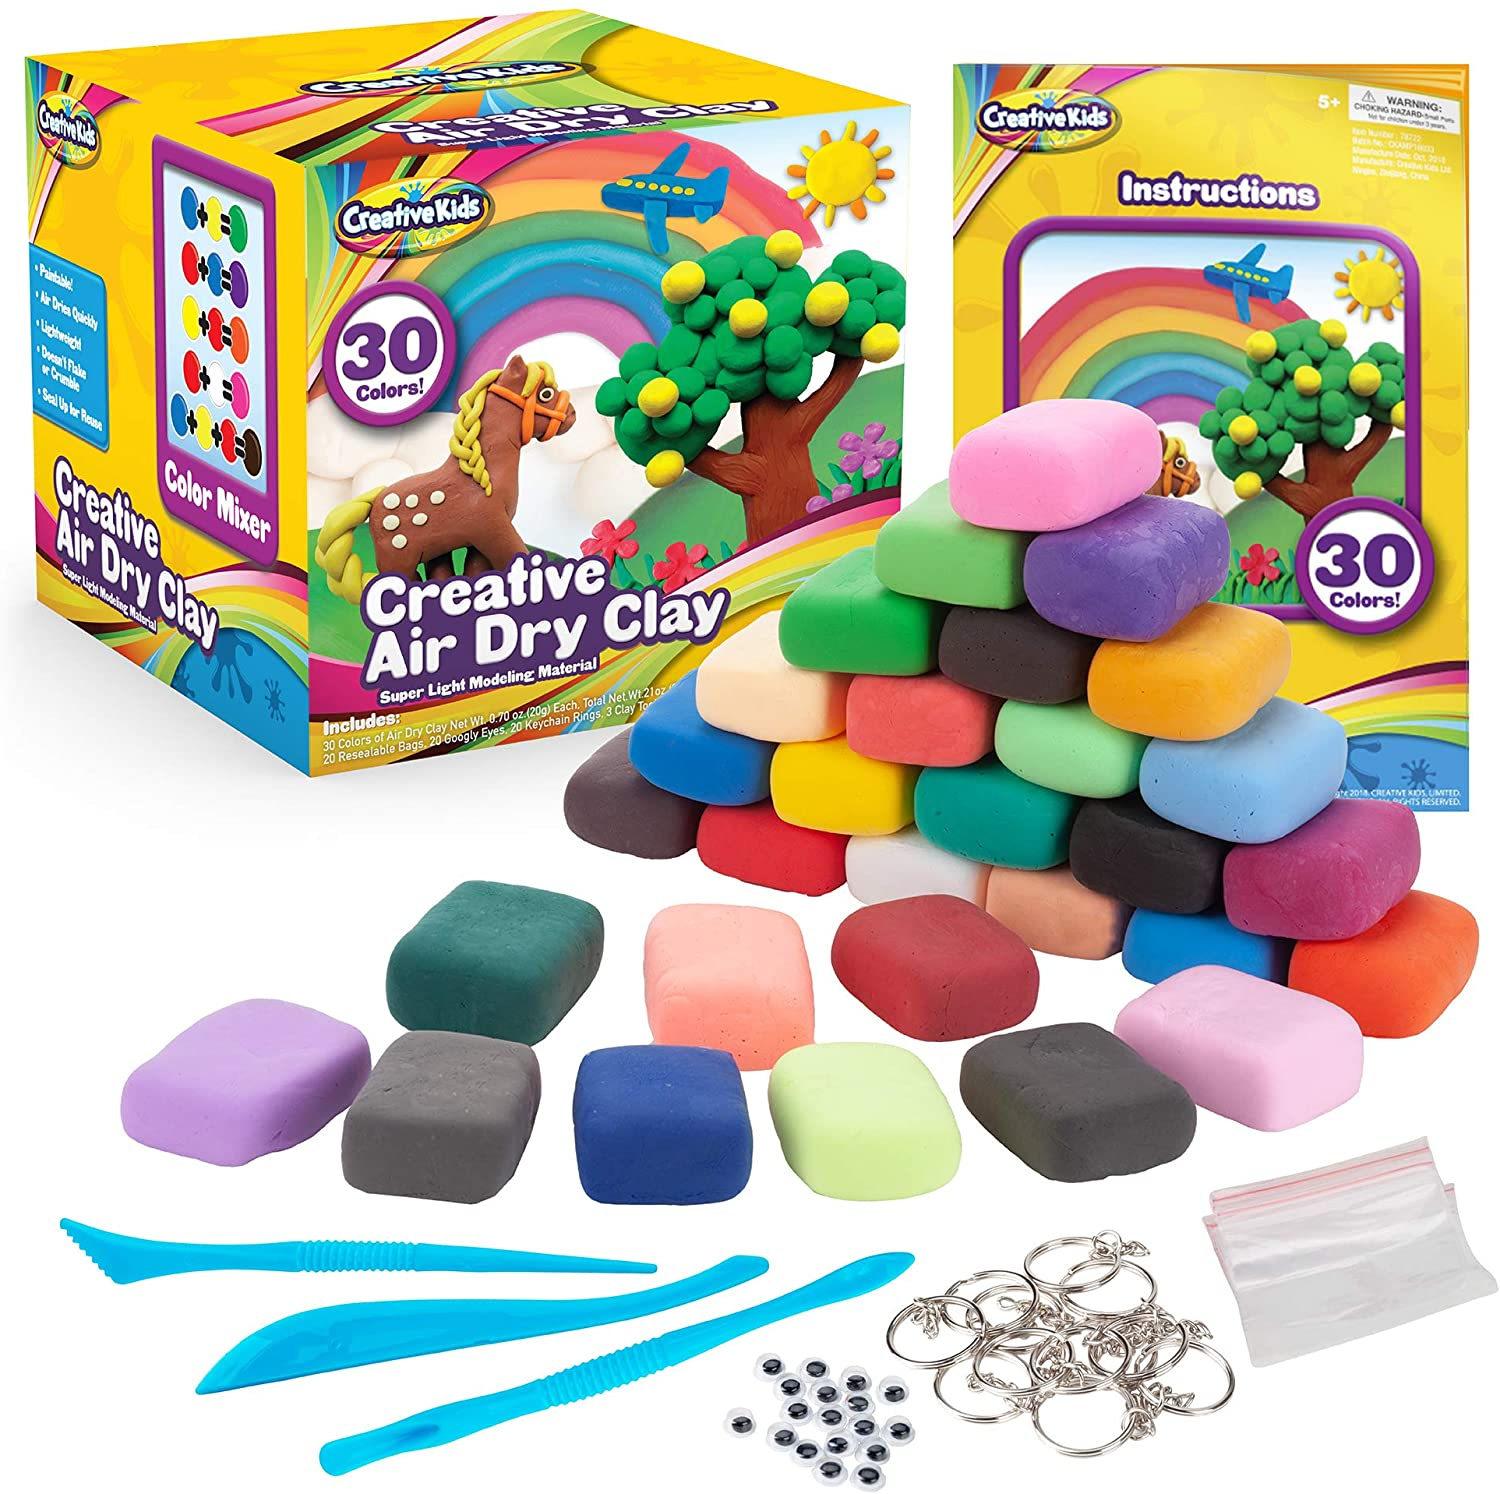 10 Toys That Can Nurture Your Child's Imagination And Creativity